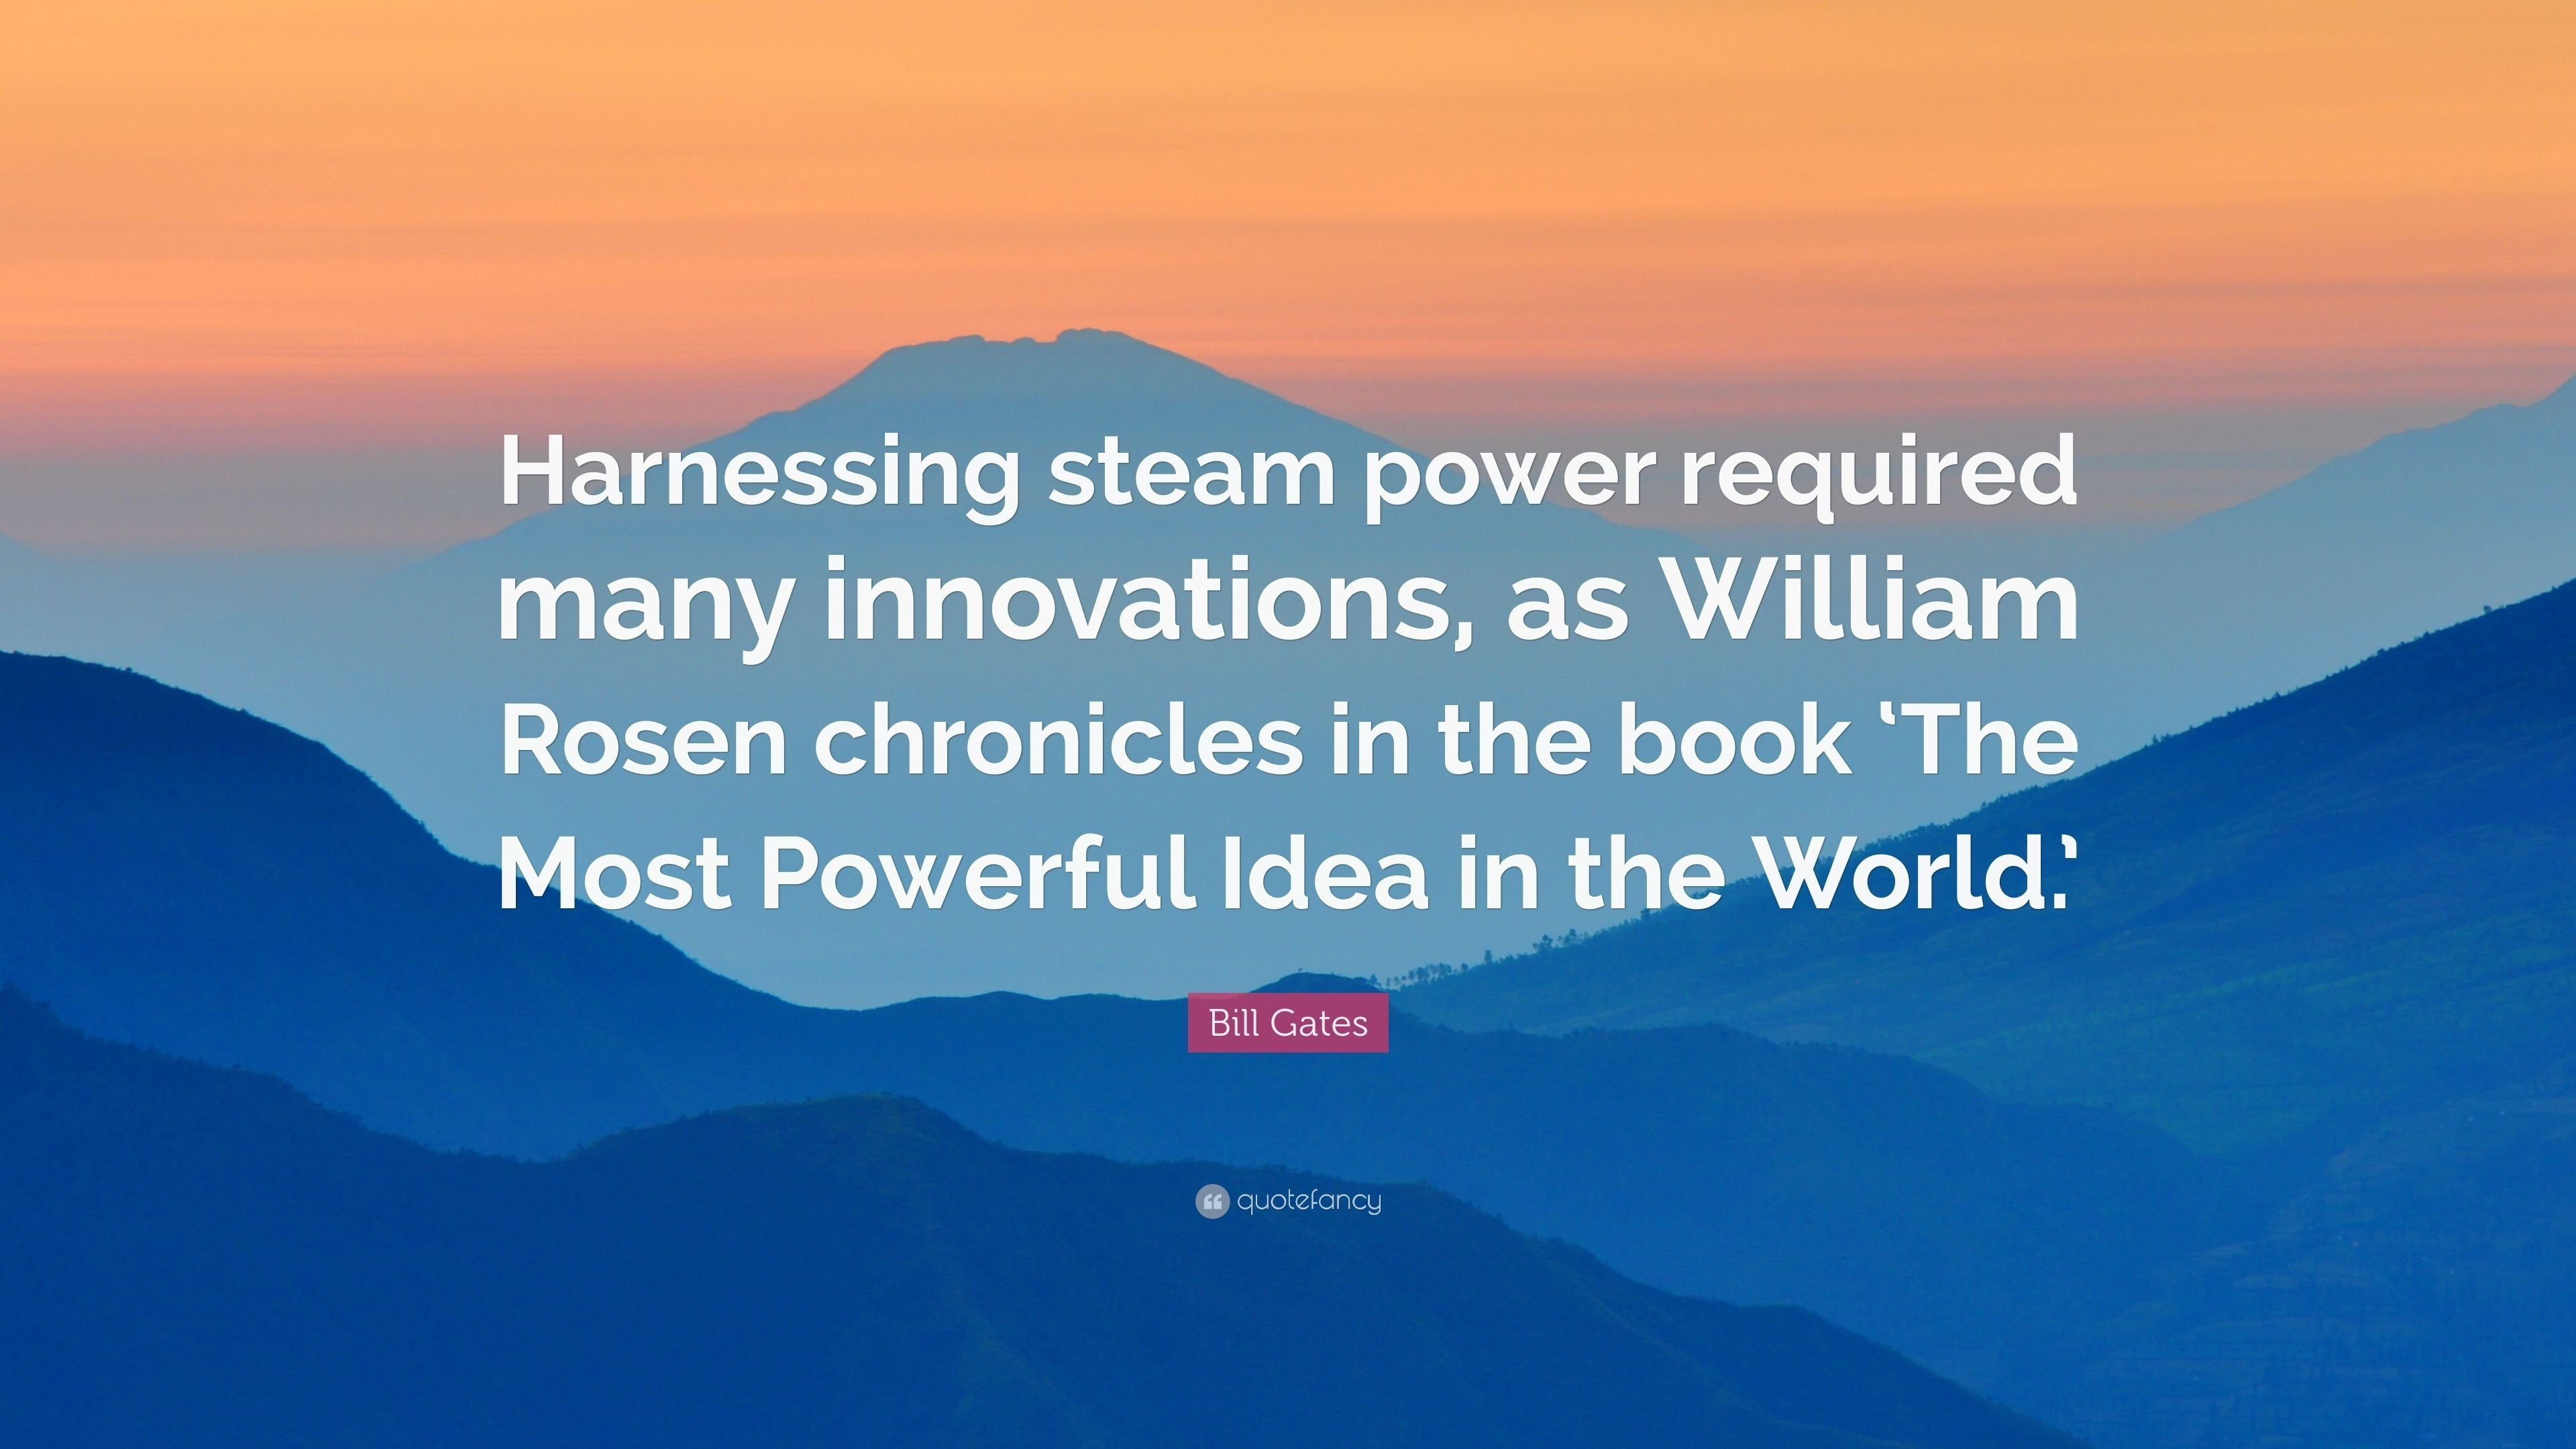 10 Amazing The Most Powerful Idea In The World bill gates quote harnessing steam power required many innovations 1